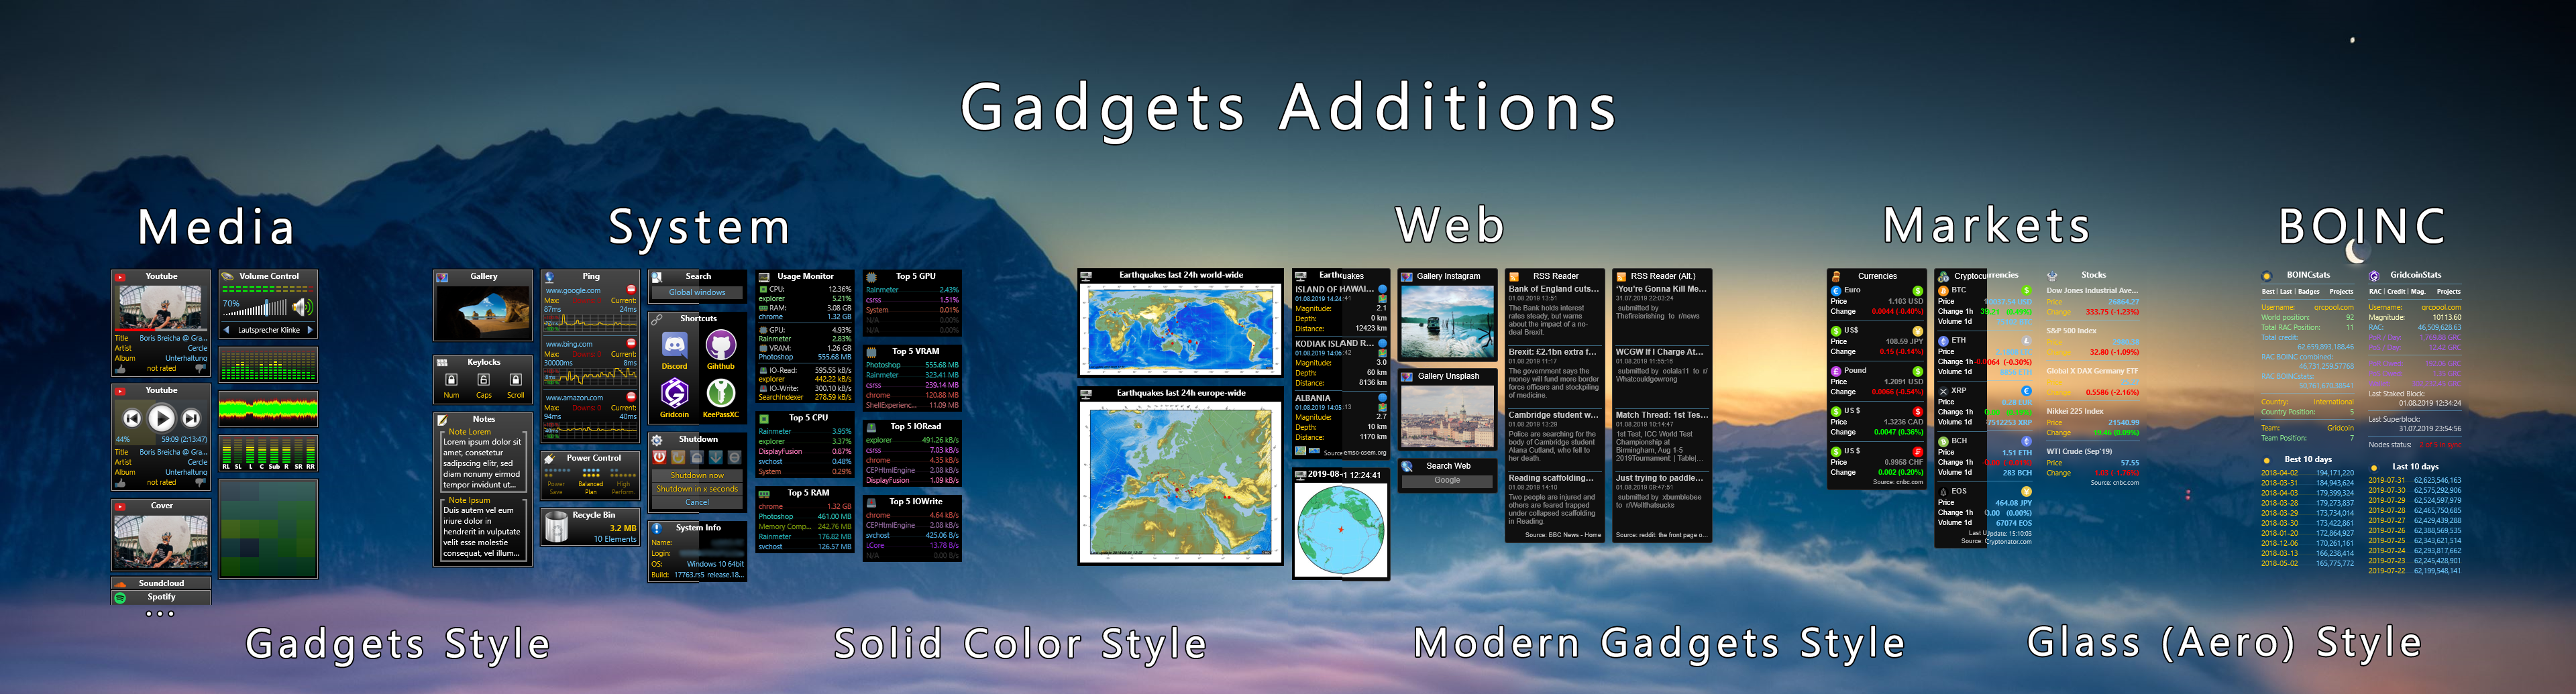 Gadgets Additions 4.3.1